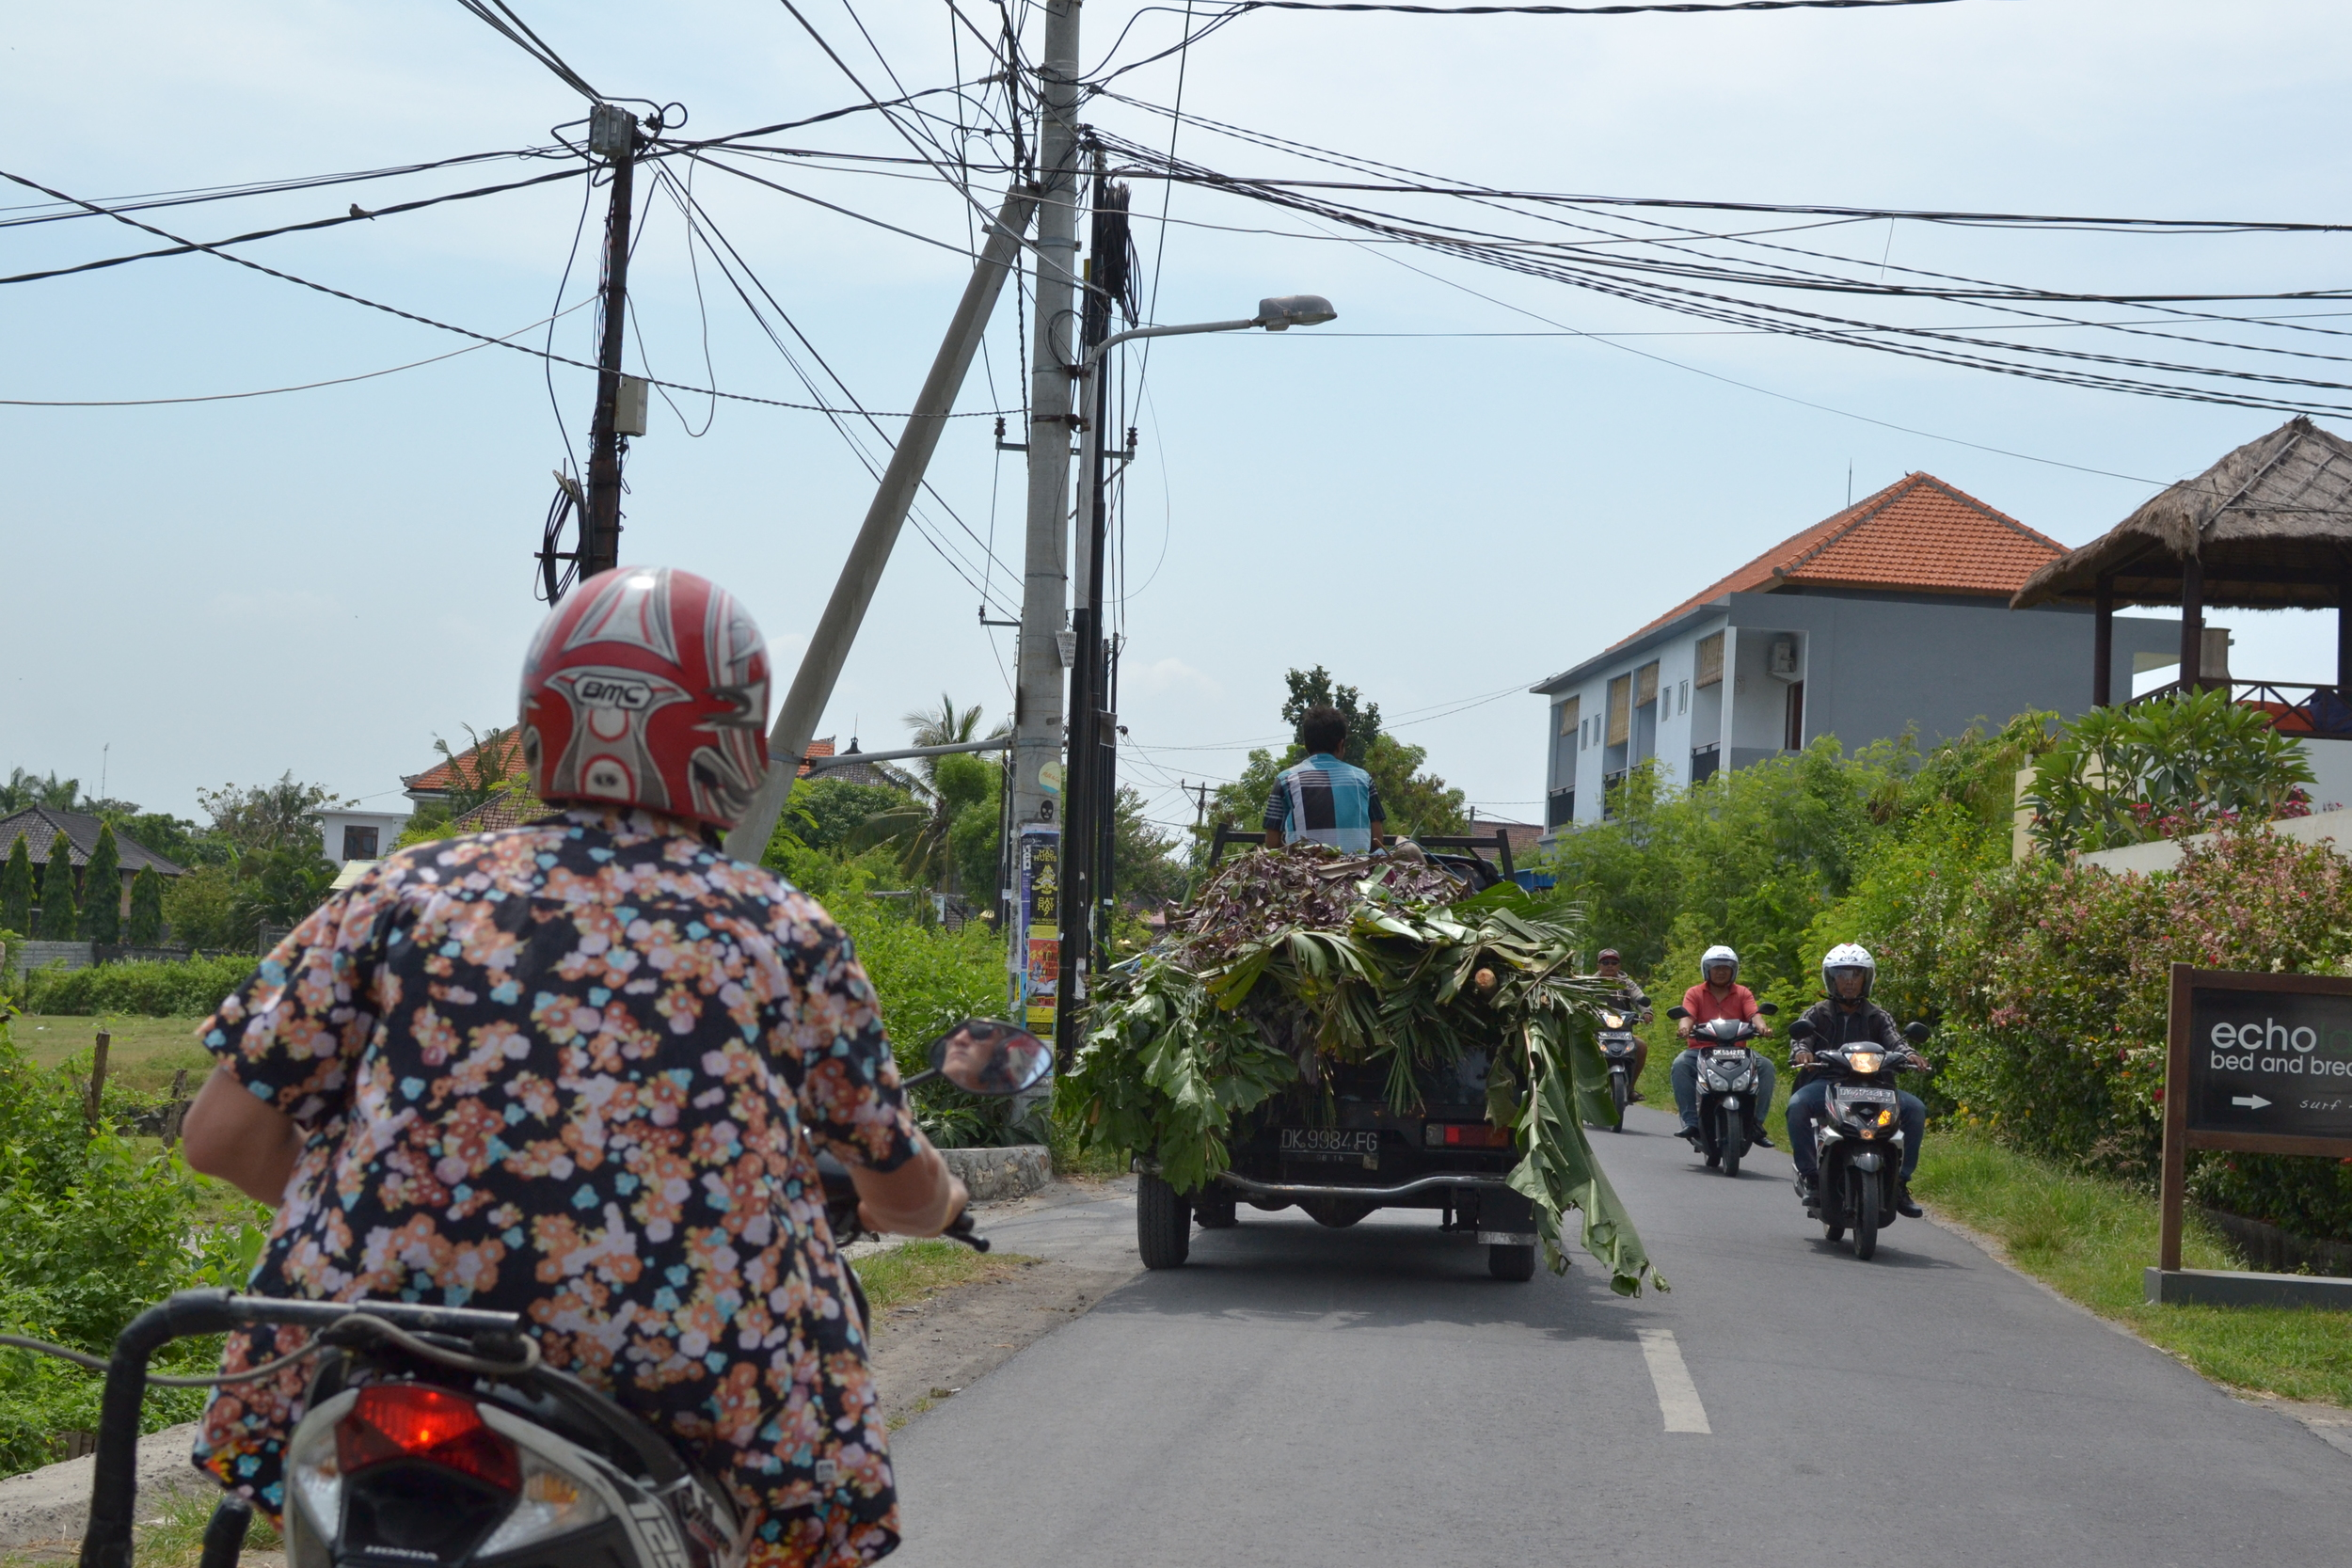 Cruising the streets of Canggu, trying to remember to drive on the left side, not right.